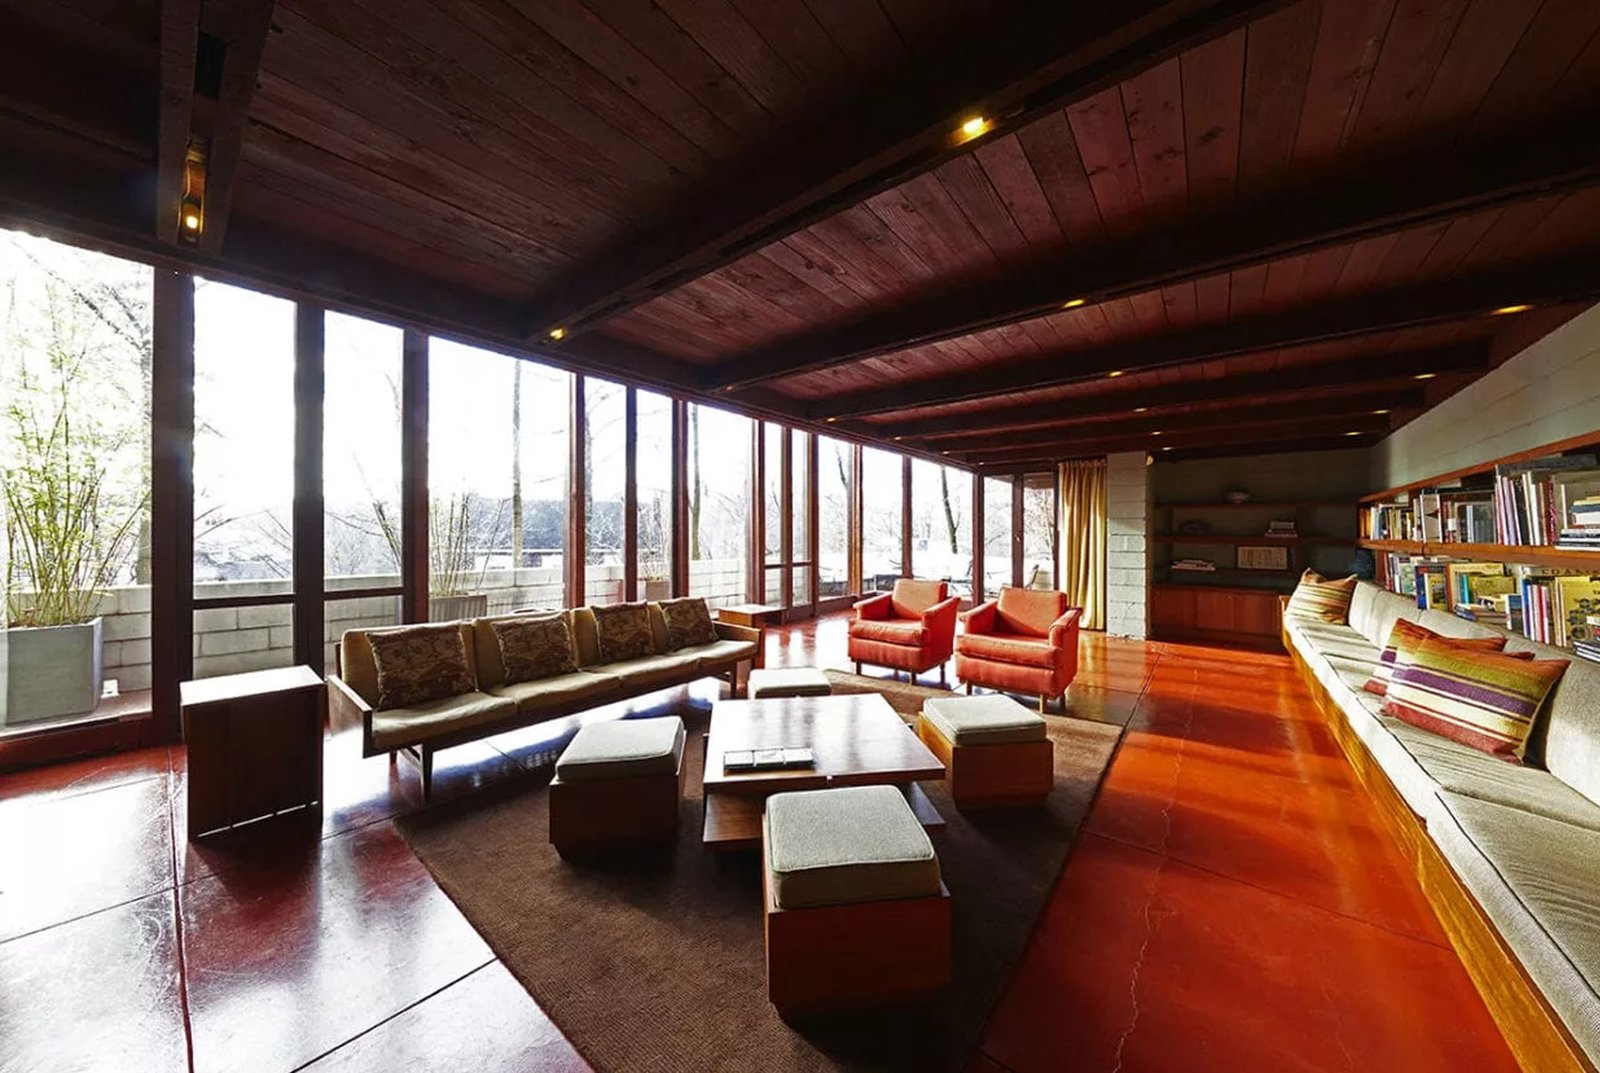 A Frank Lloyd Wright Home Catches Fire, Suffering $100K in Damages